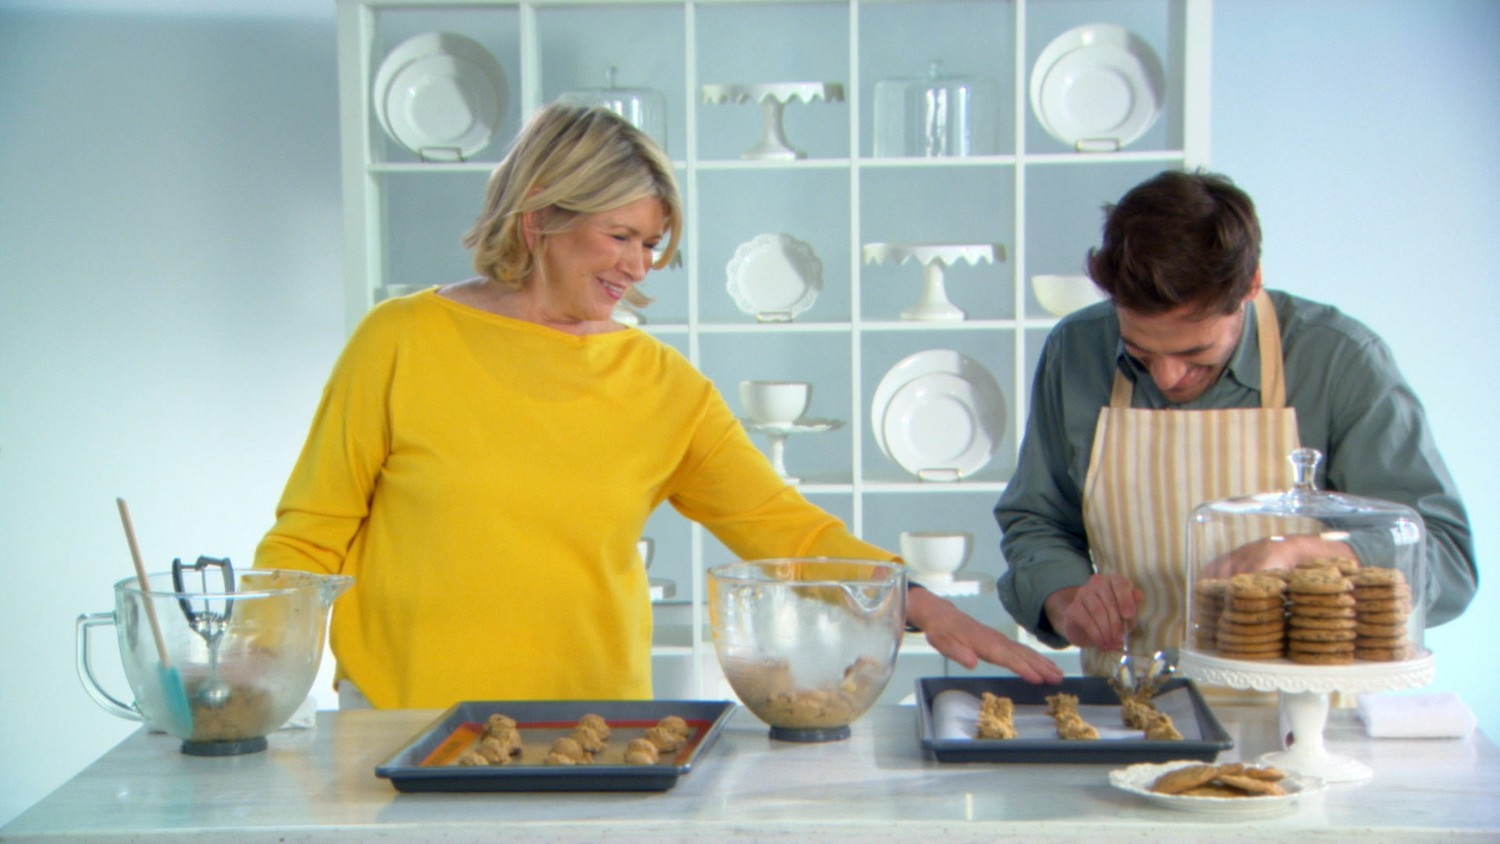 Video: Best Kitchen Tools for Making Cookies | Martha Stewart